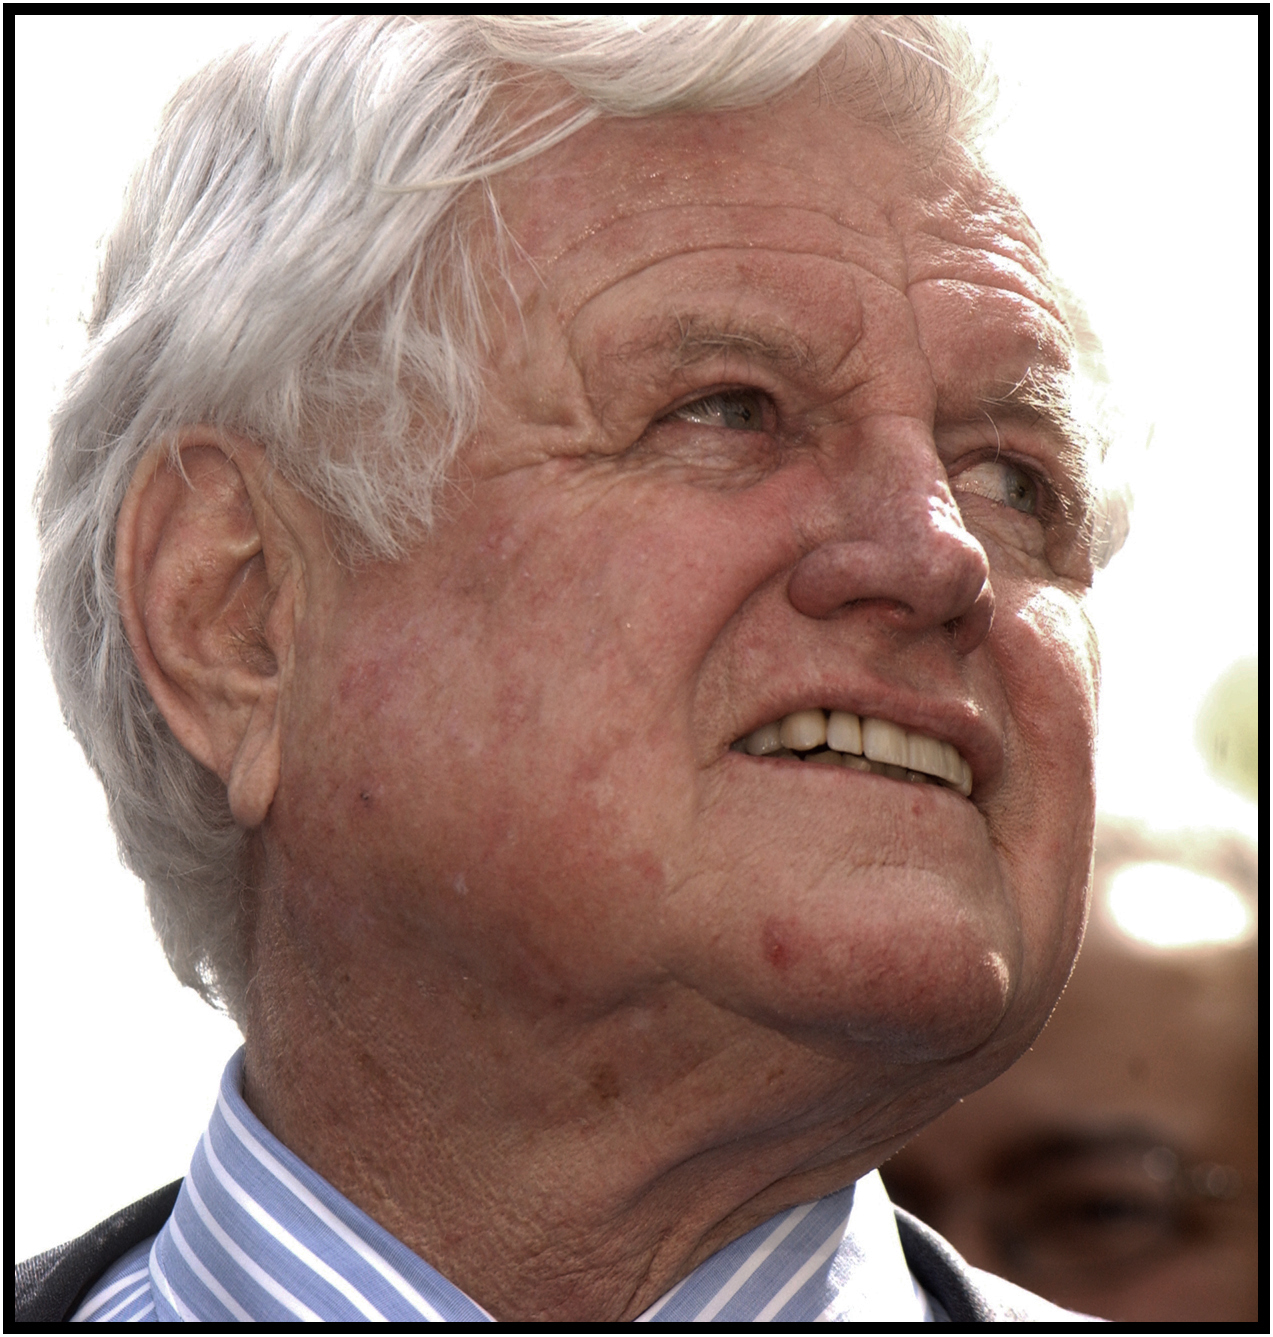 Edward (Ted) Kennedy, 2005.